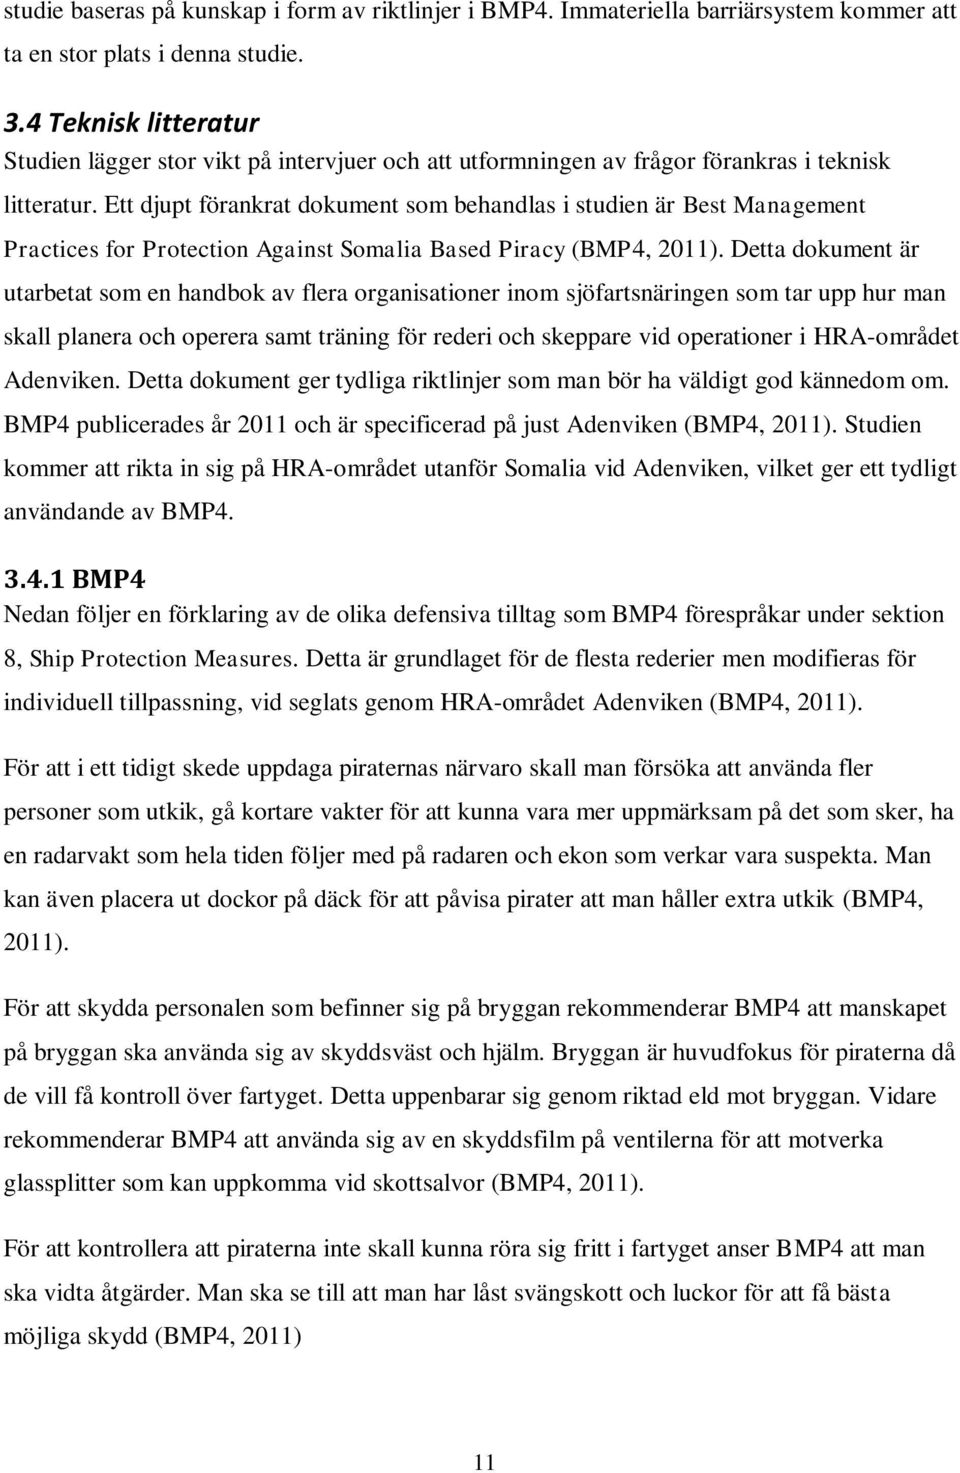 Ett djupt förankrat dokument som behandlas i studien är Best Management Practices for Protection Against Somalia Based Piracy (BMP4, 2011).